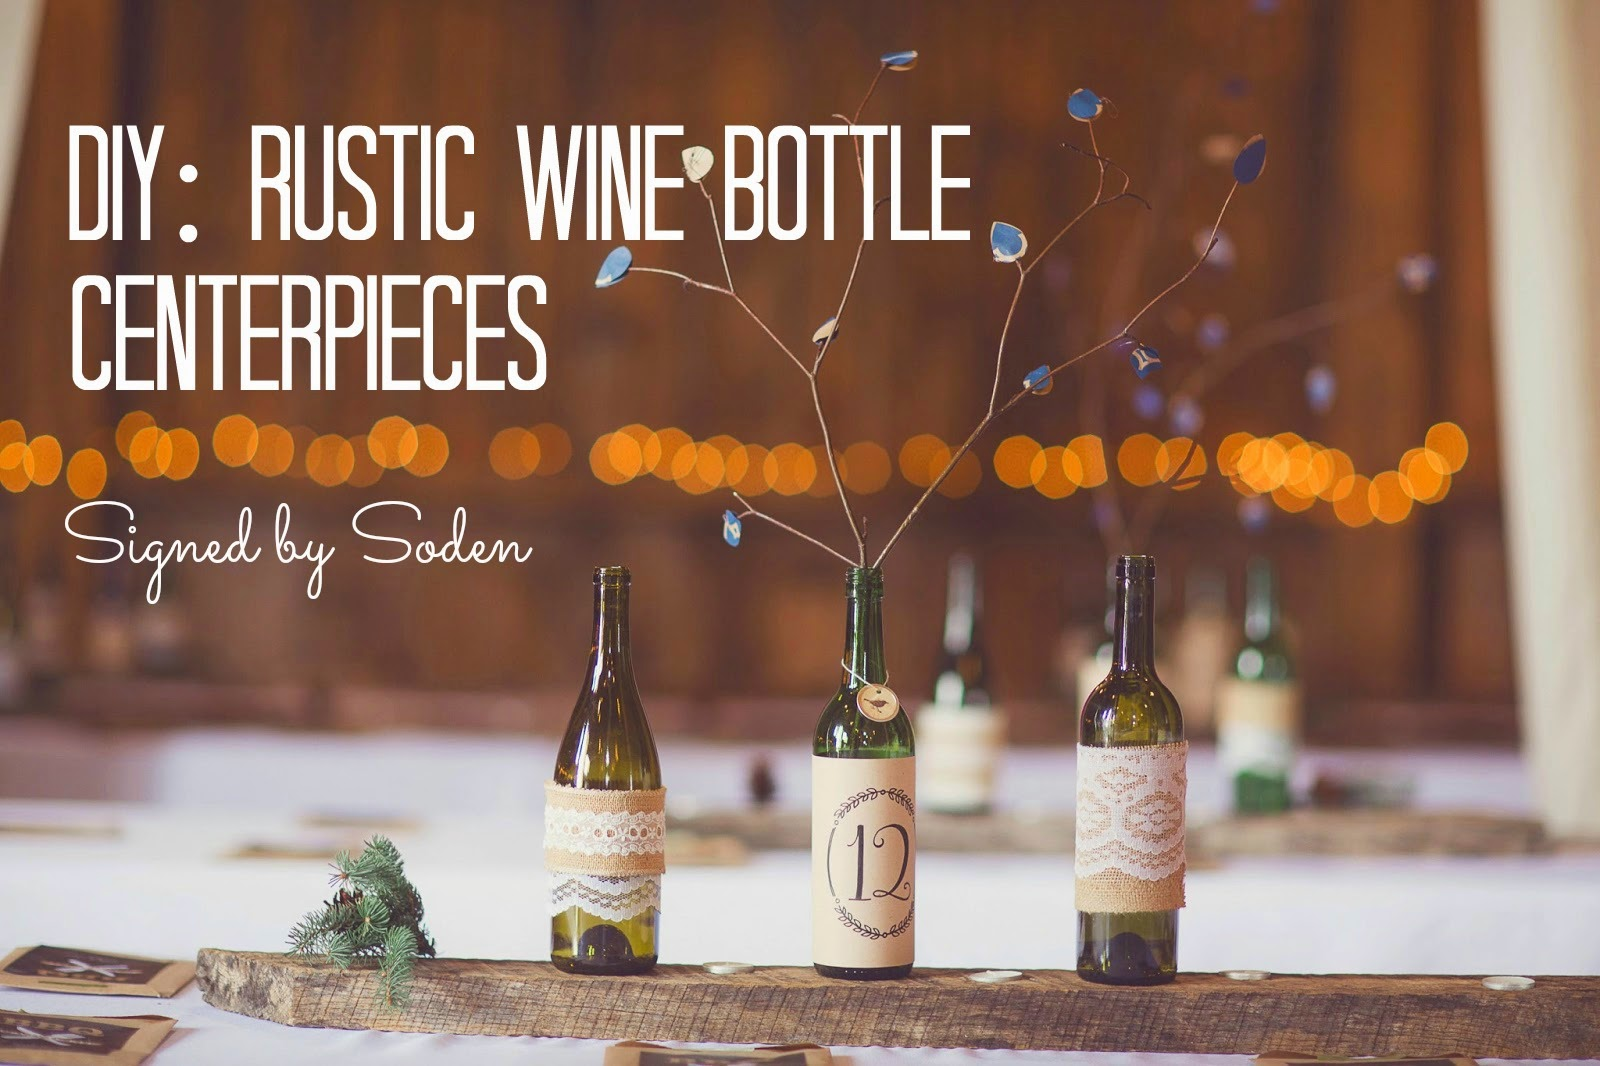 DIY: Rustic Wine Bottle Centerpieces - Signed by Soden